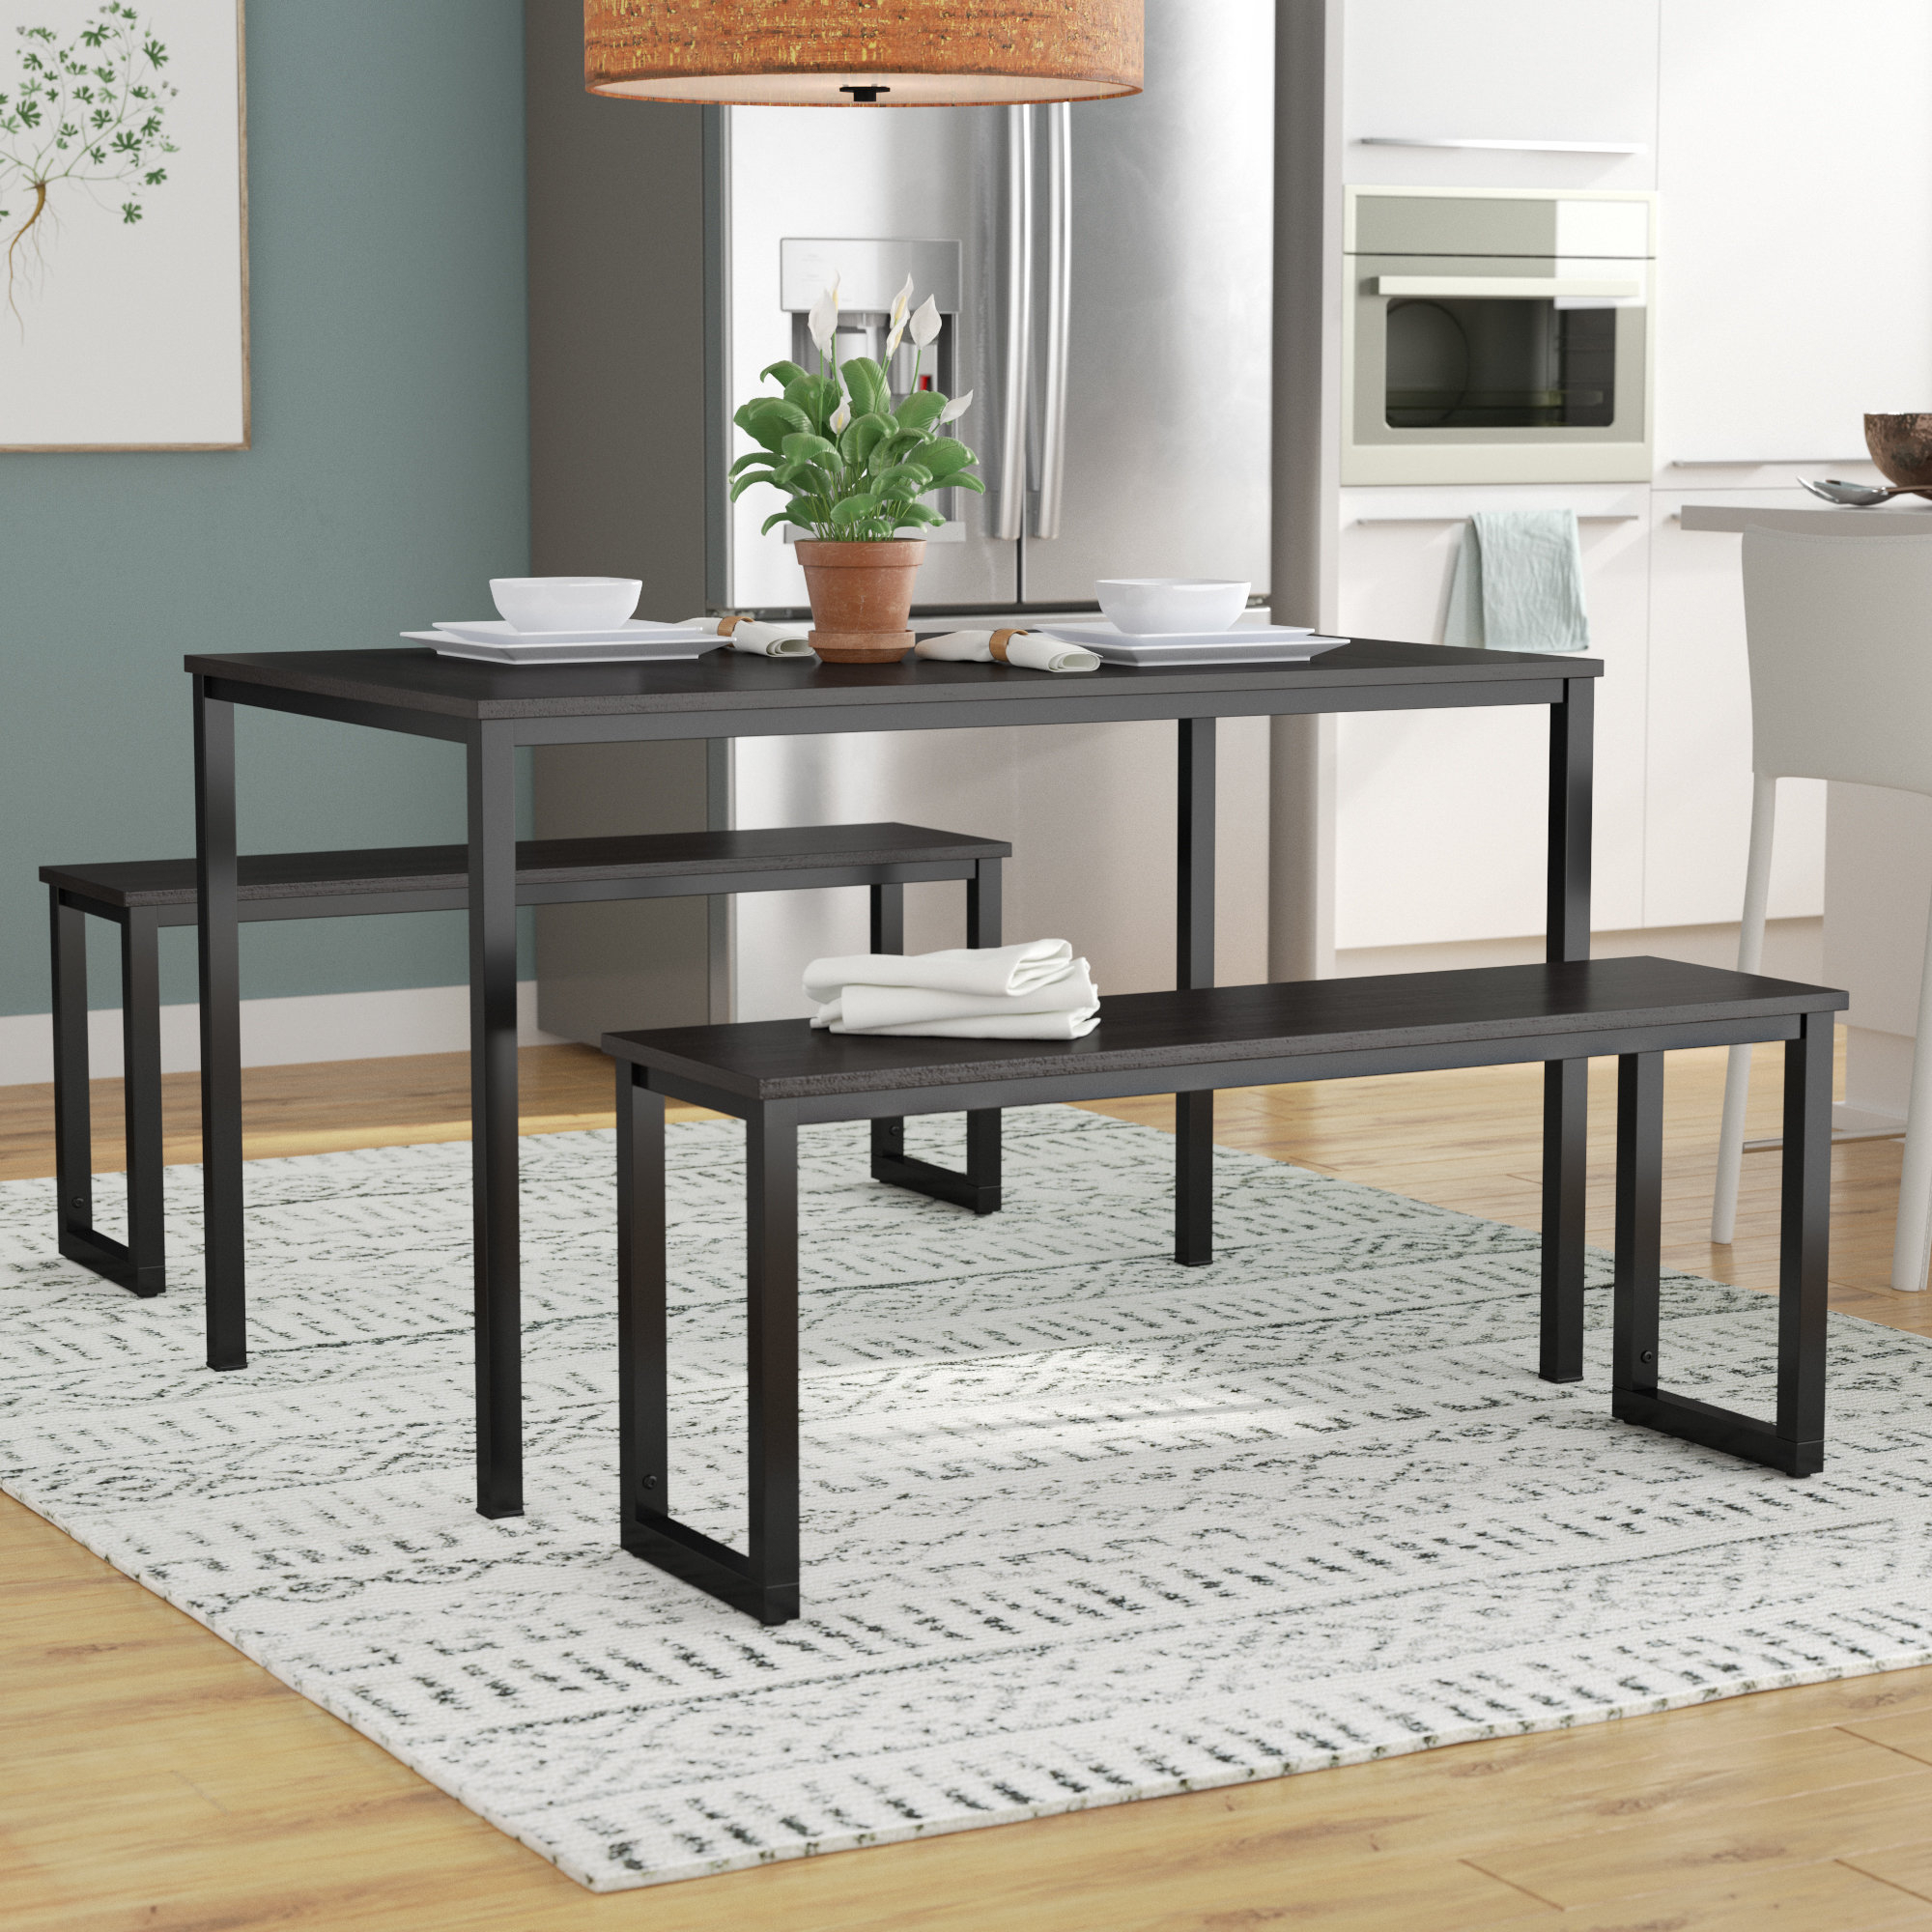 Inspiration about Wayfair Regarding Newest 3 Piece Dining Sets (#3 of 20)